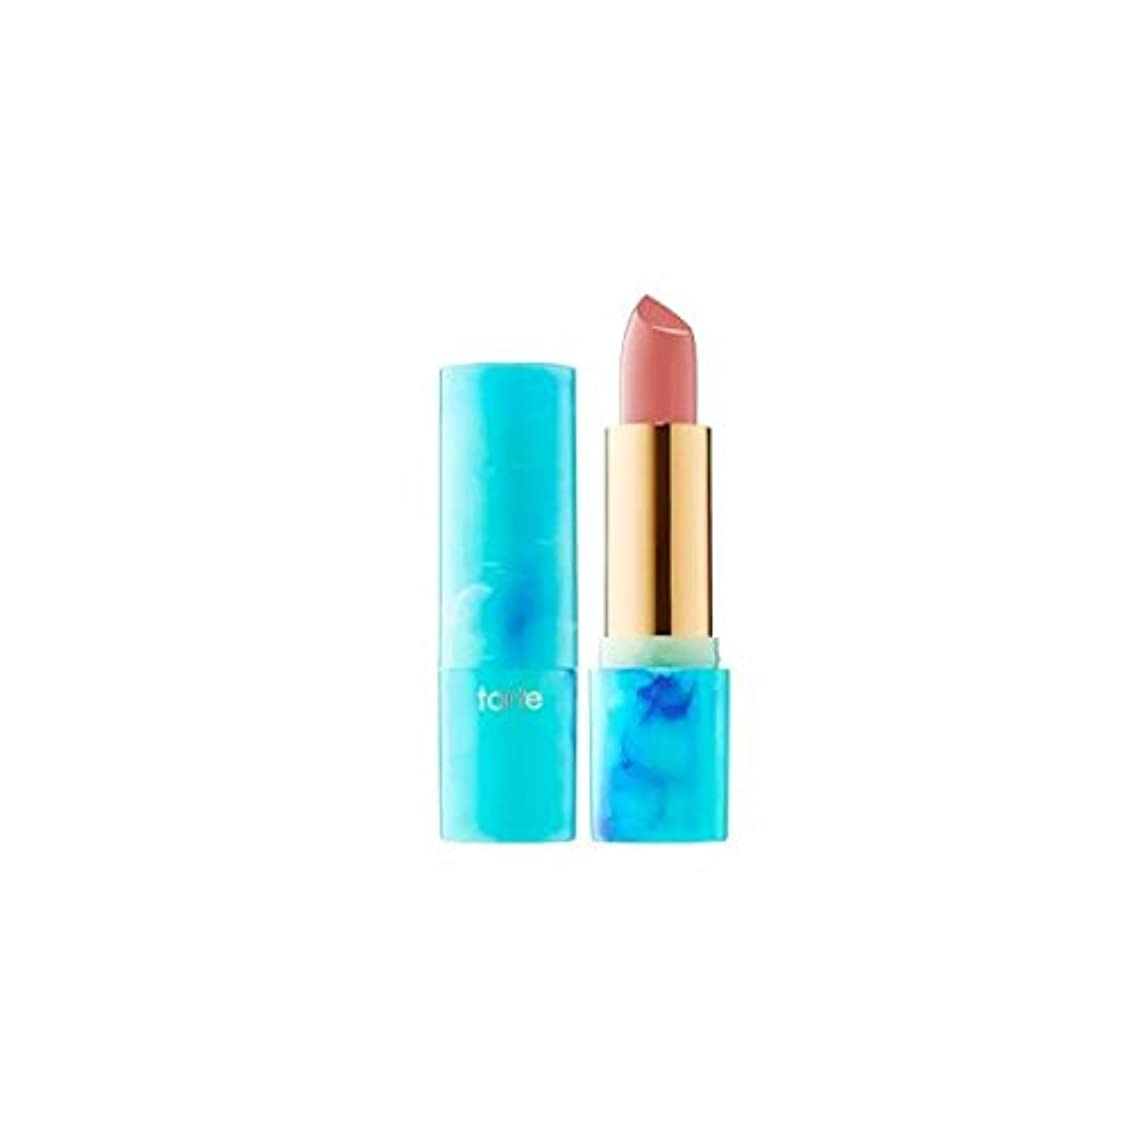 翻訳者マージジャングルtarteタルト リップ Color Splash Lipstick - Rainforest of the Sea Collection Satin finish